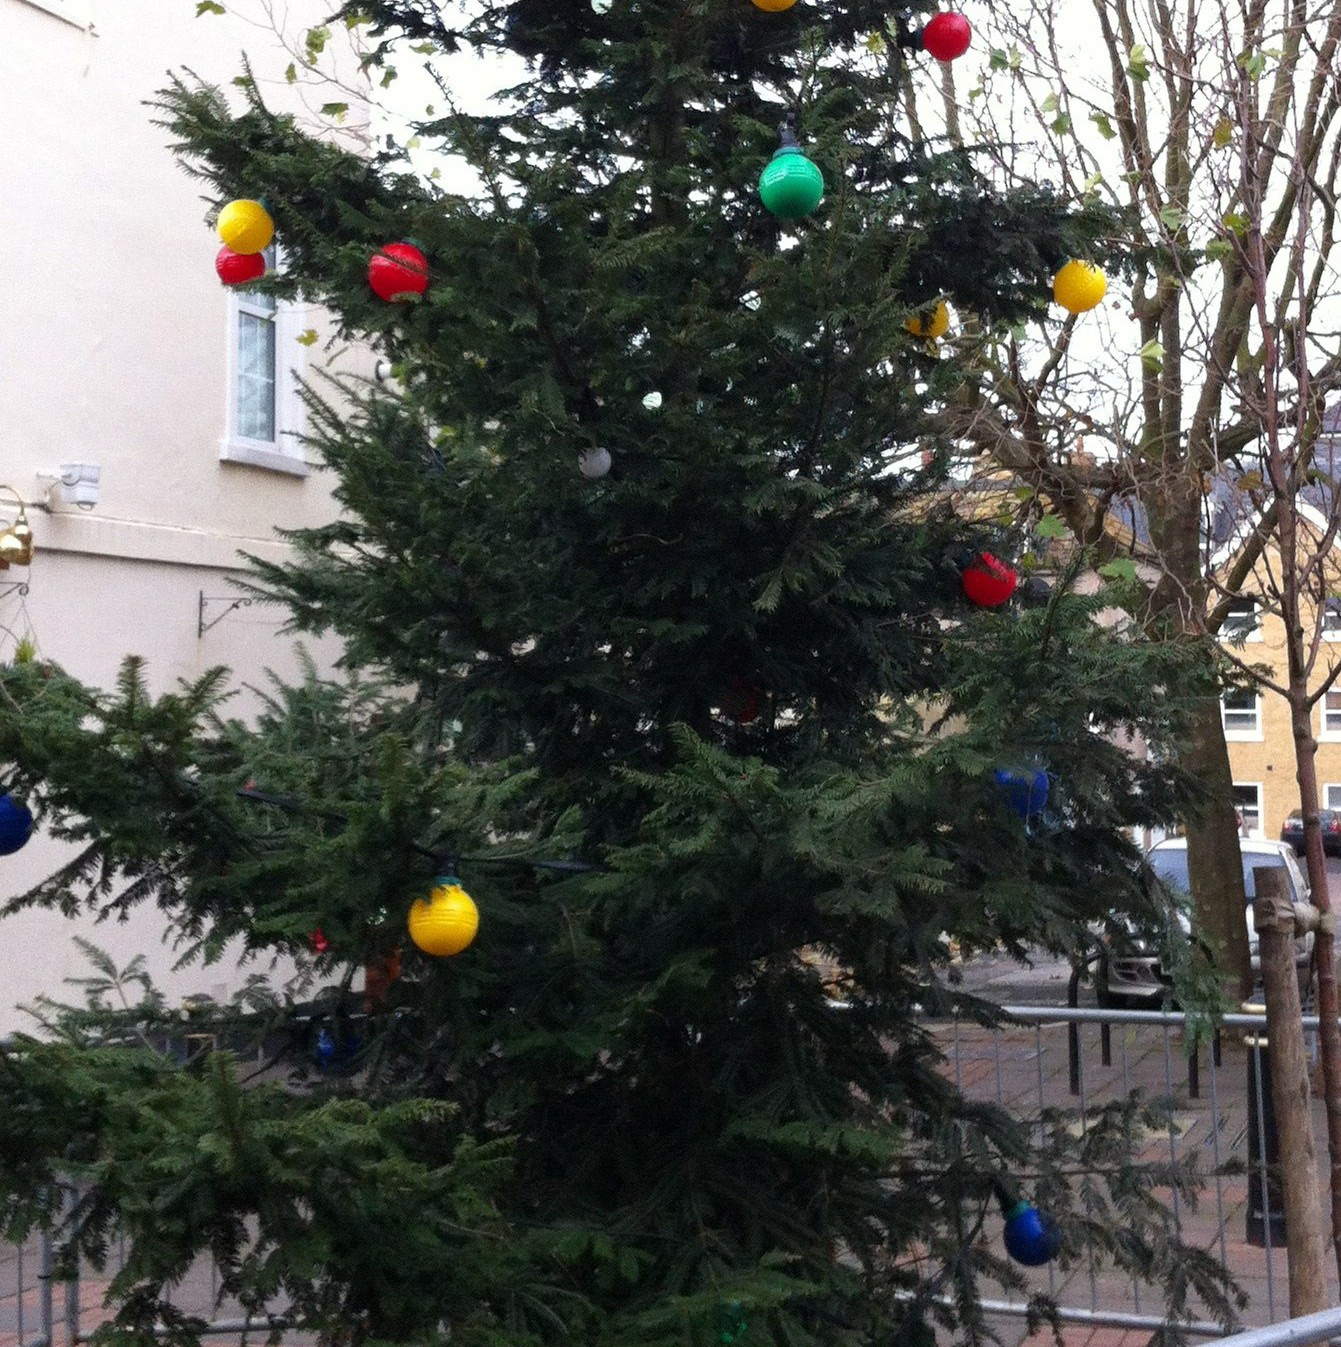 The scrawny Christmas tree in Herne Bay town centre which was booed by residents when the lights were turned on